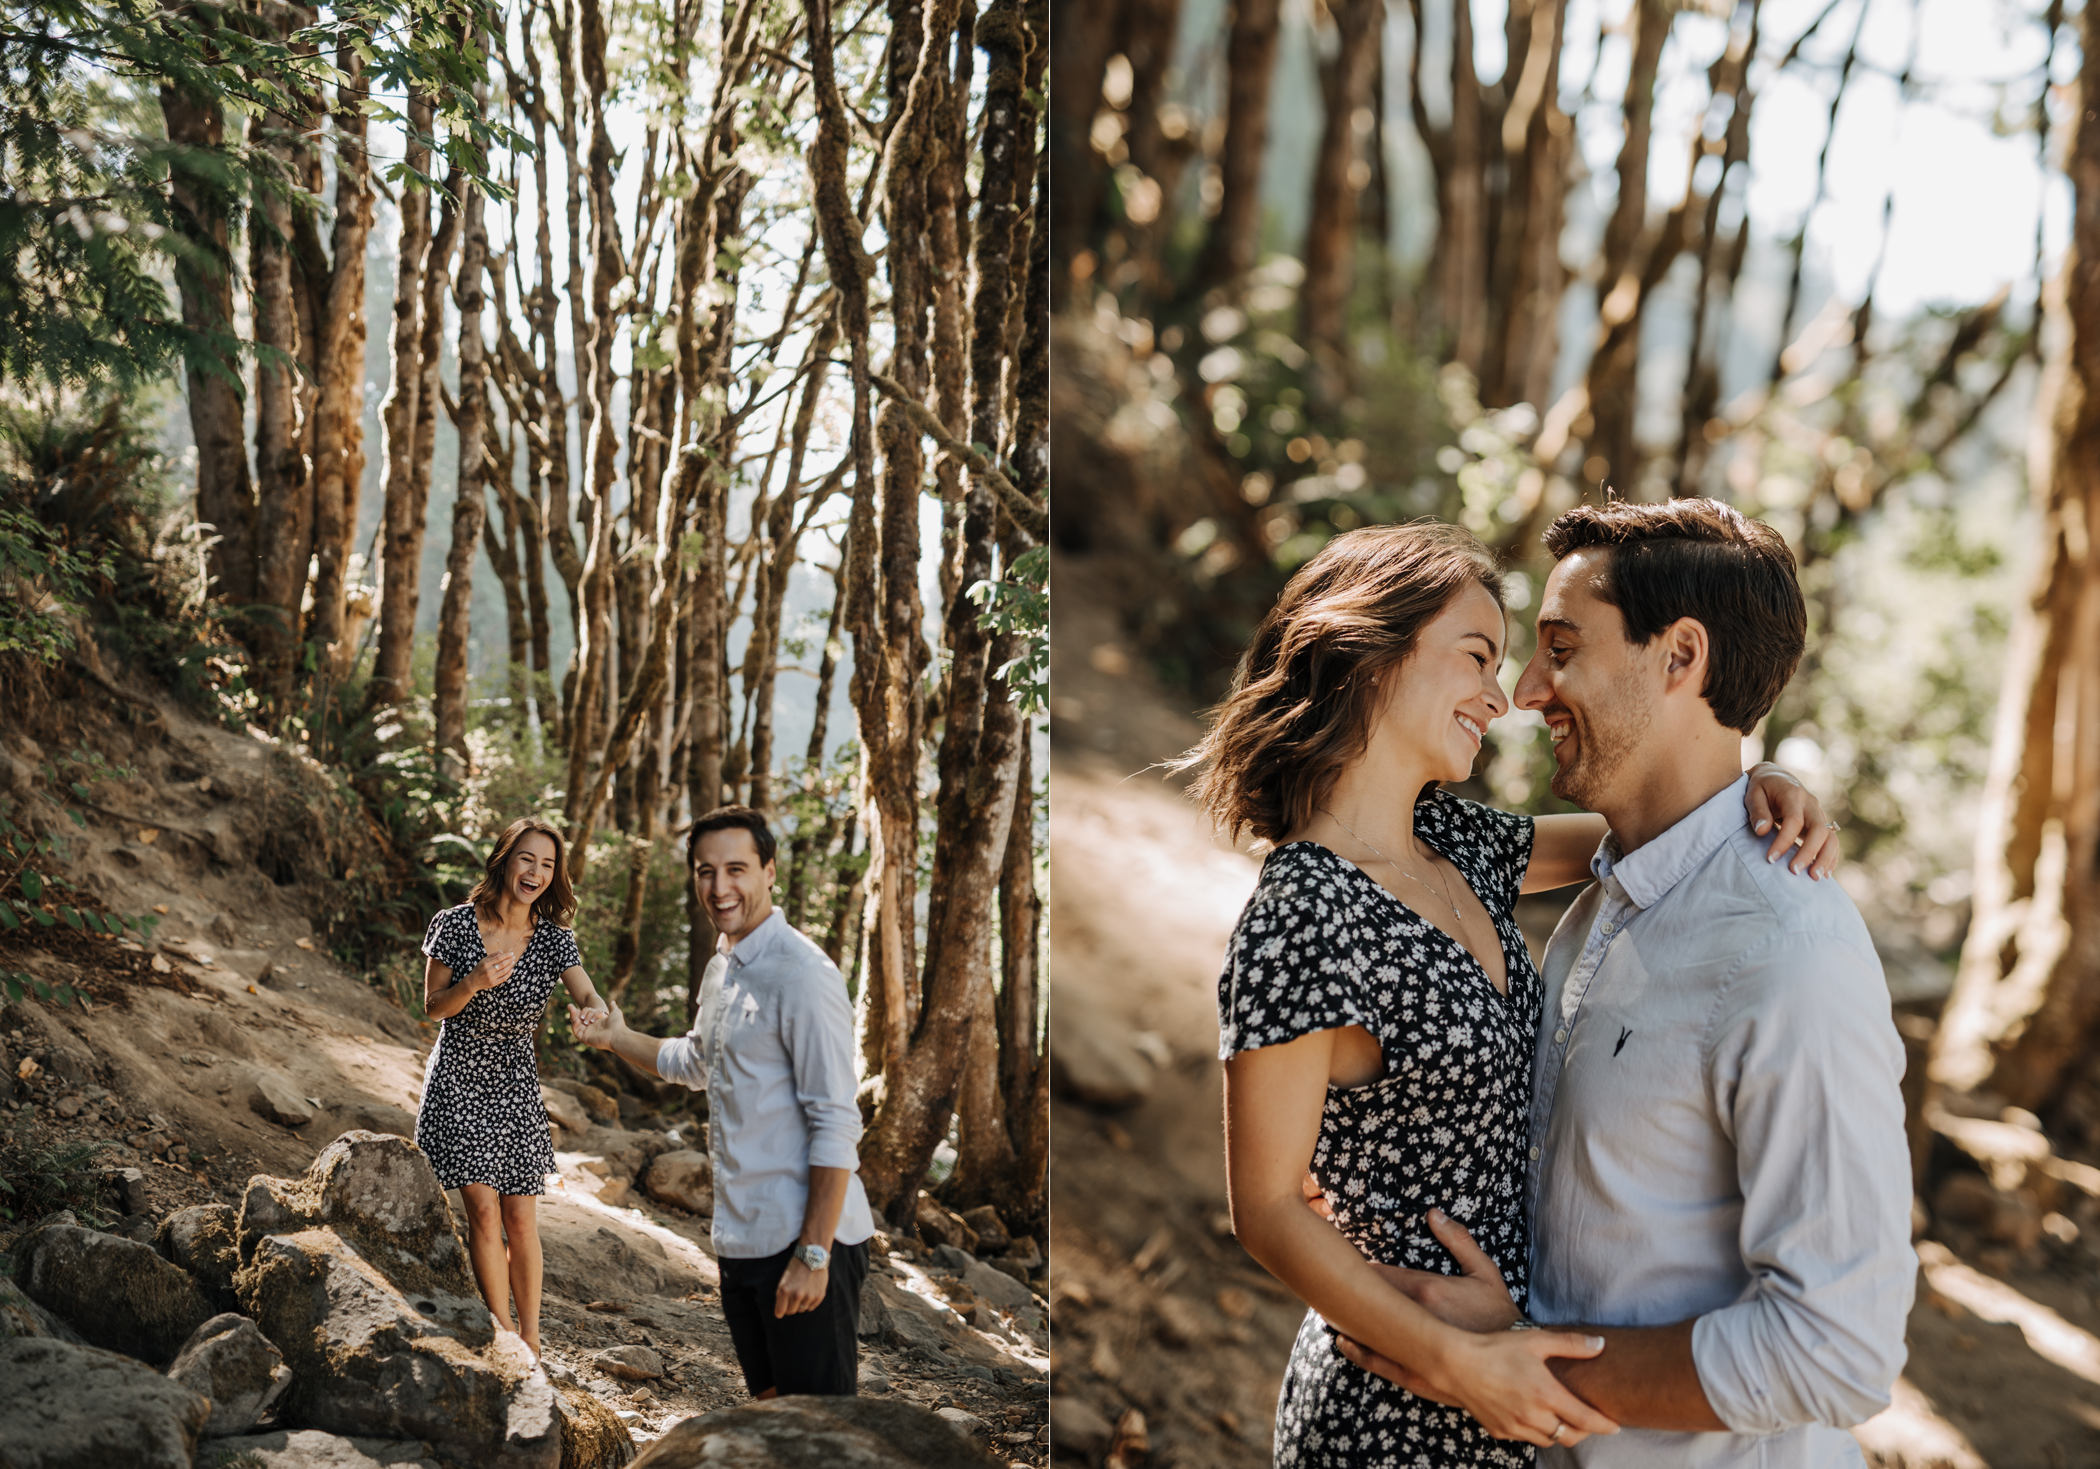 003-kaoverii-silva-ca-prewedding-vancouver-photography.png